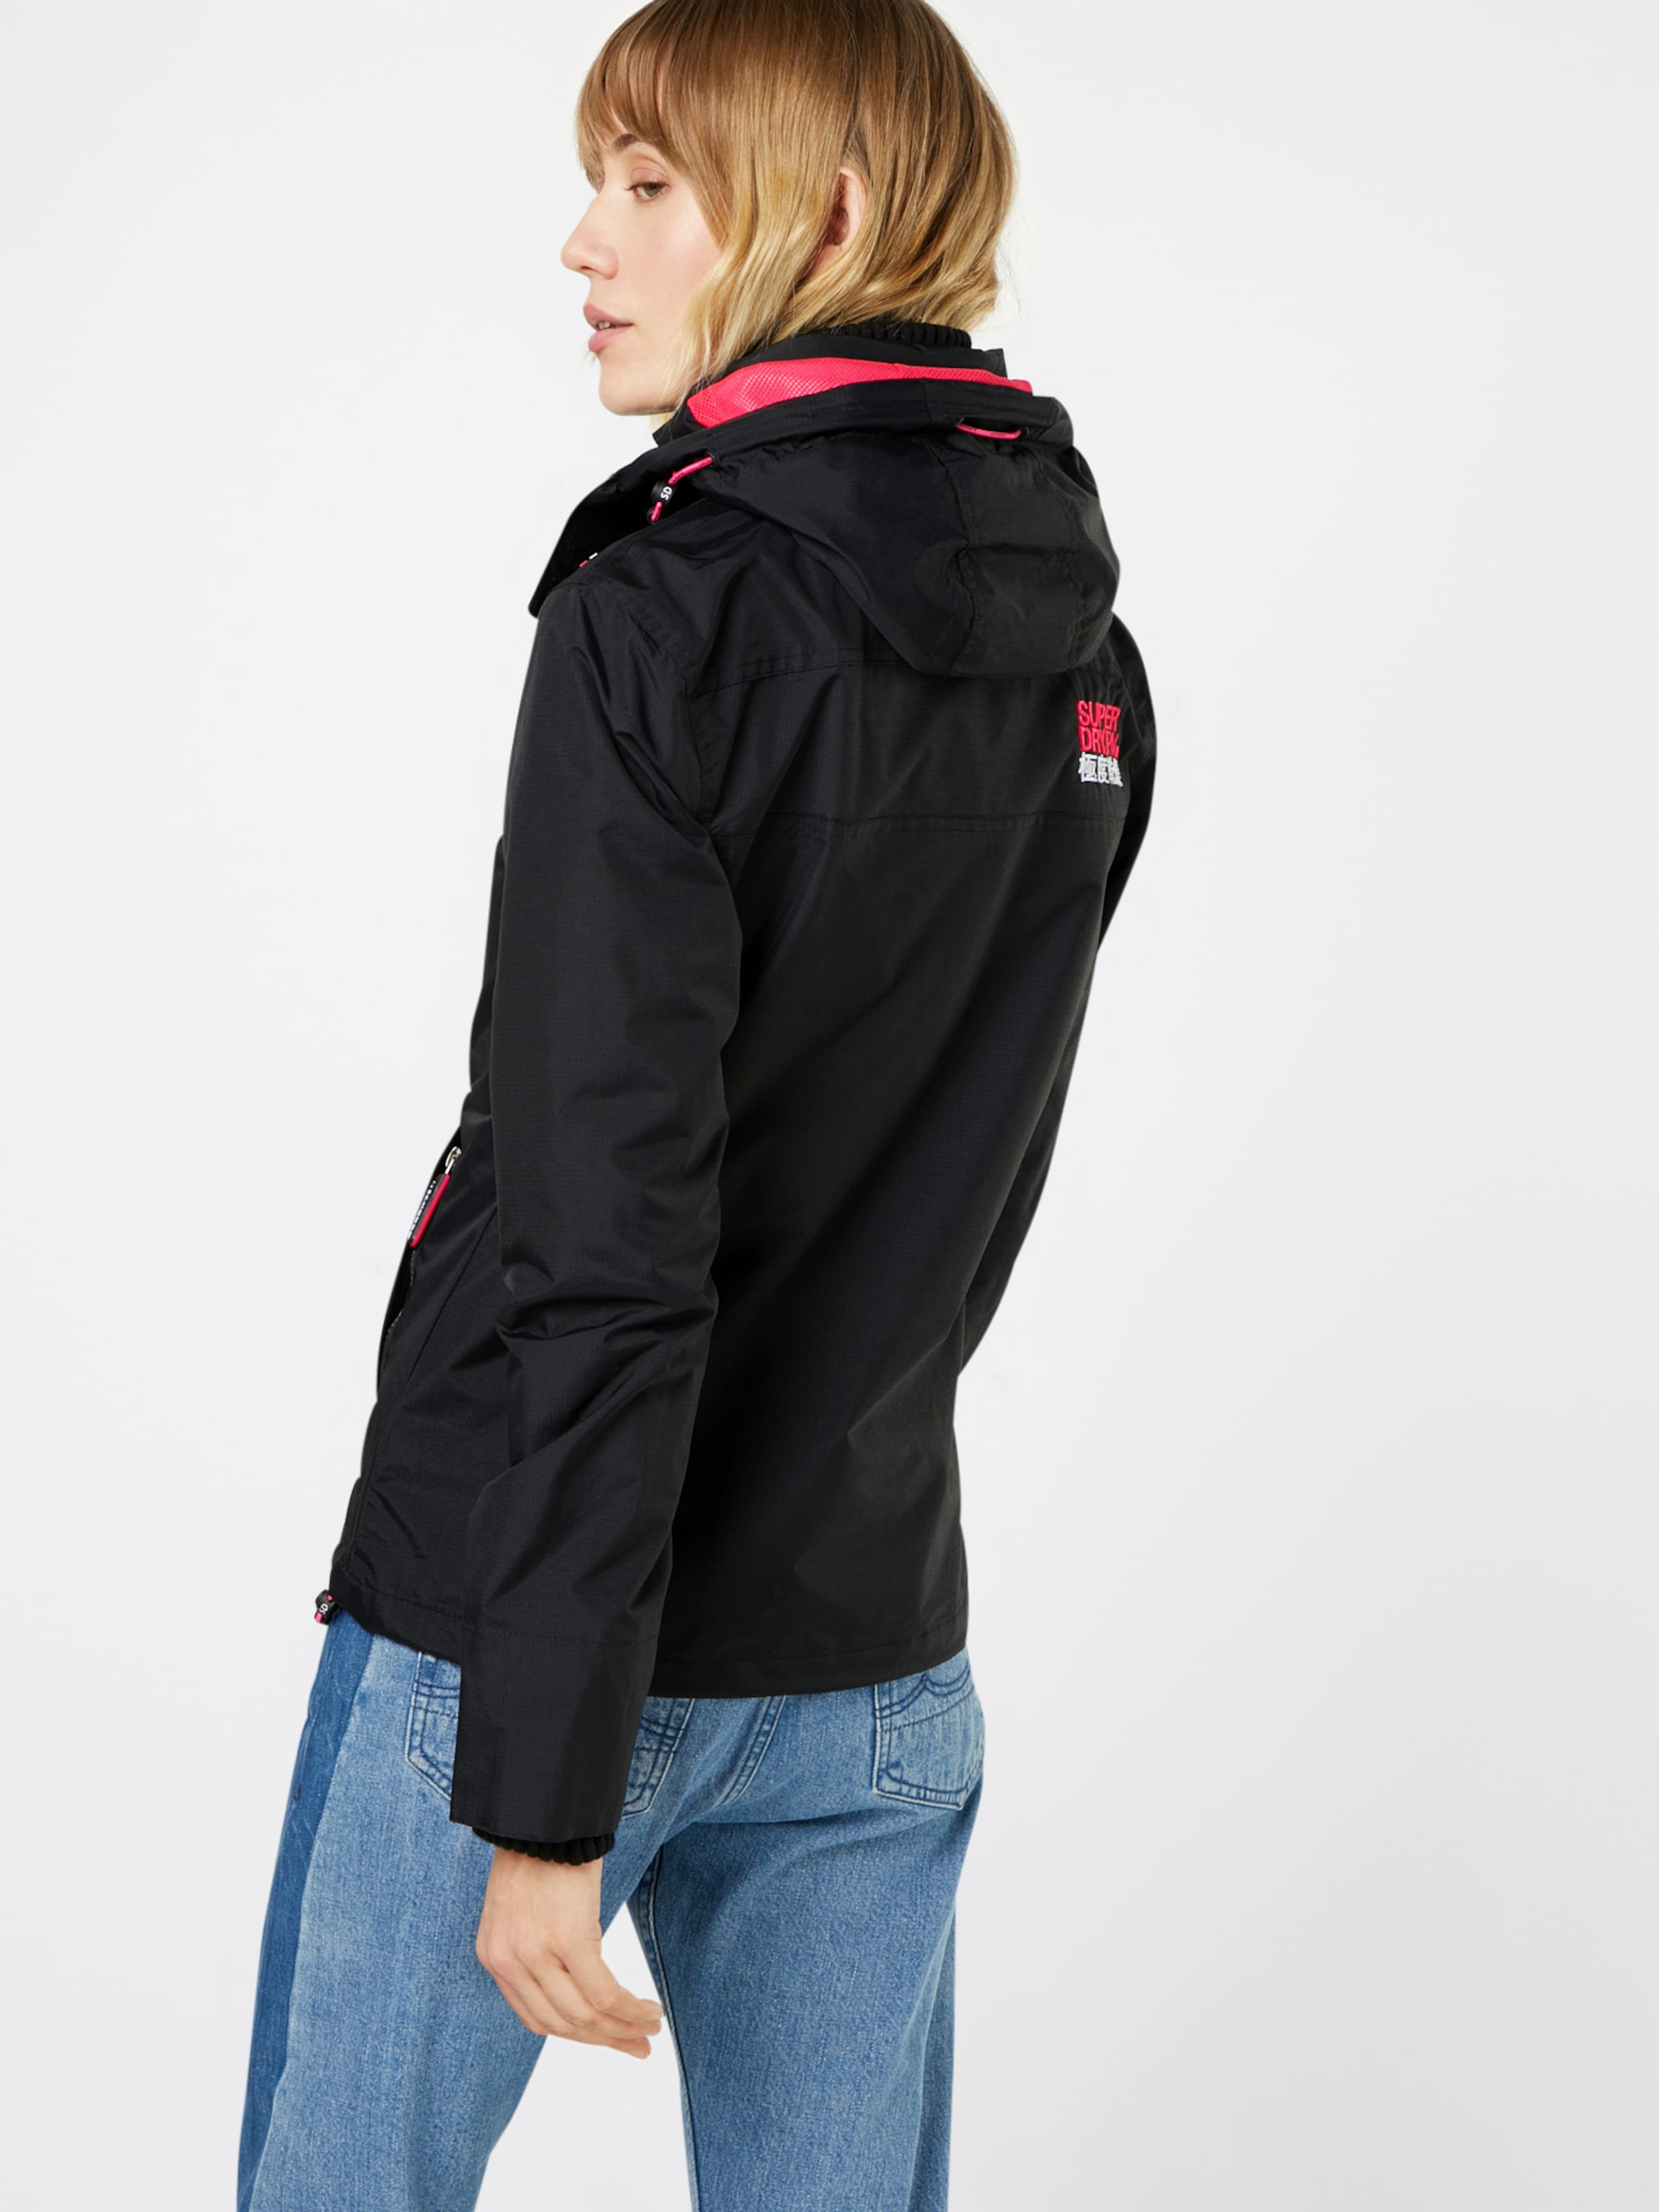 Noir Fonctionnelle 'tech Superdry Windcheater' Pop Veste Zip Hood En byvIYf7g6